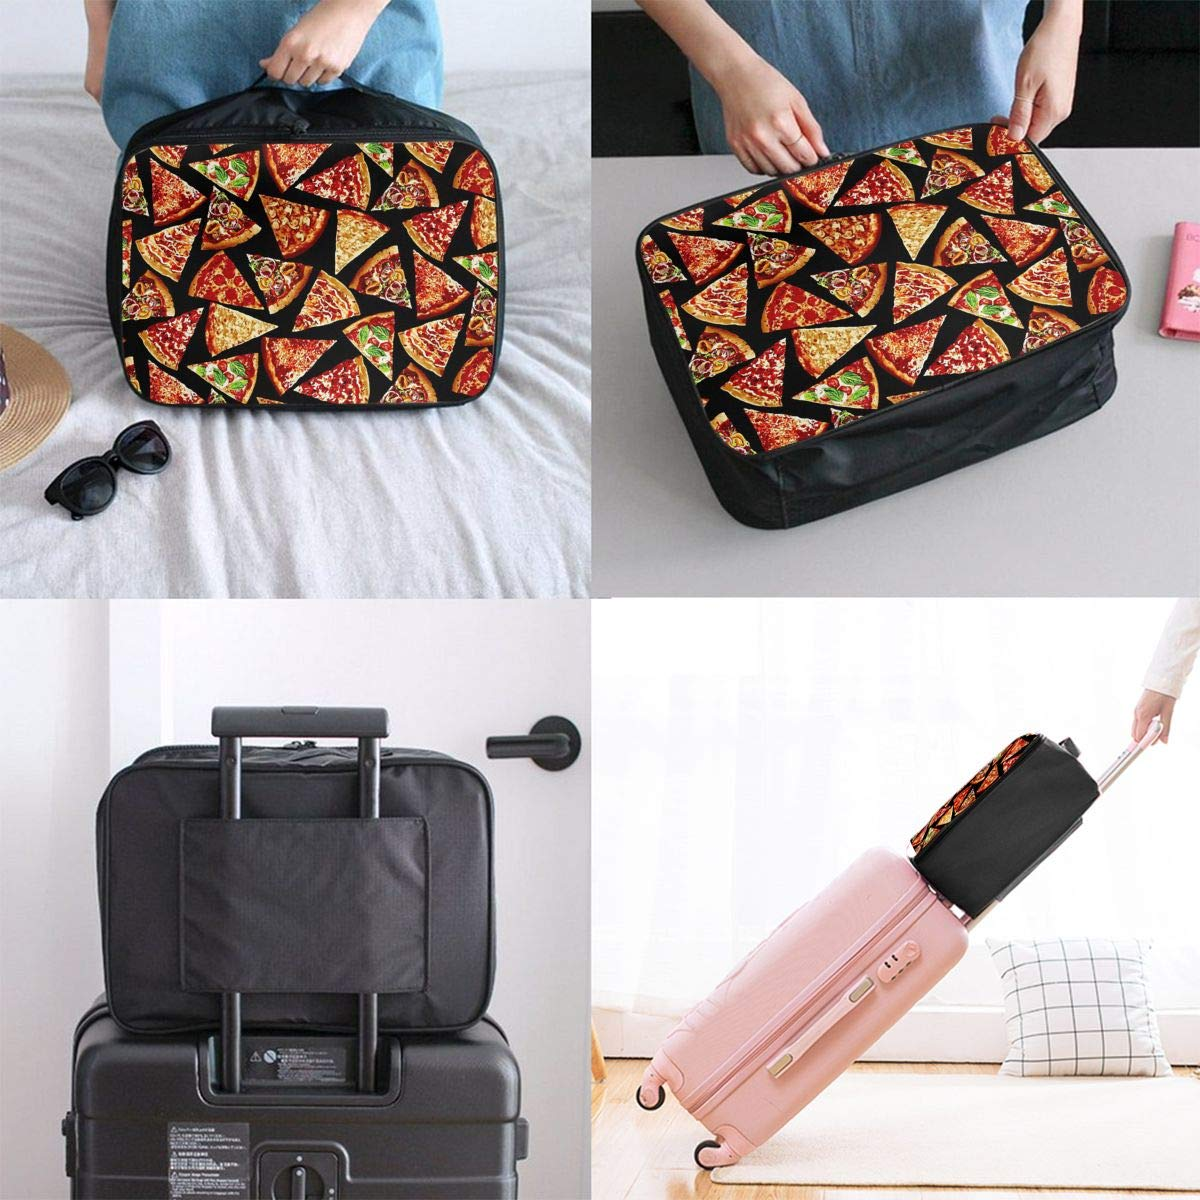 ADGAI Foodie Pizza Slices Canvas Travel Weekender Bag,Fashion Custom Lightweight Large Capacity Portable Luggage Bag,Suitcase Trolley Bag